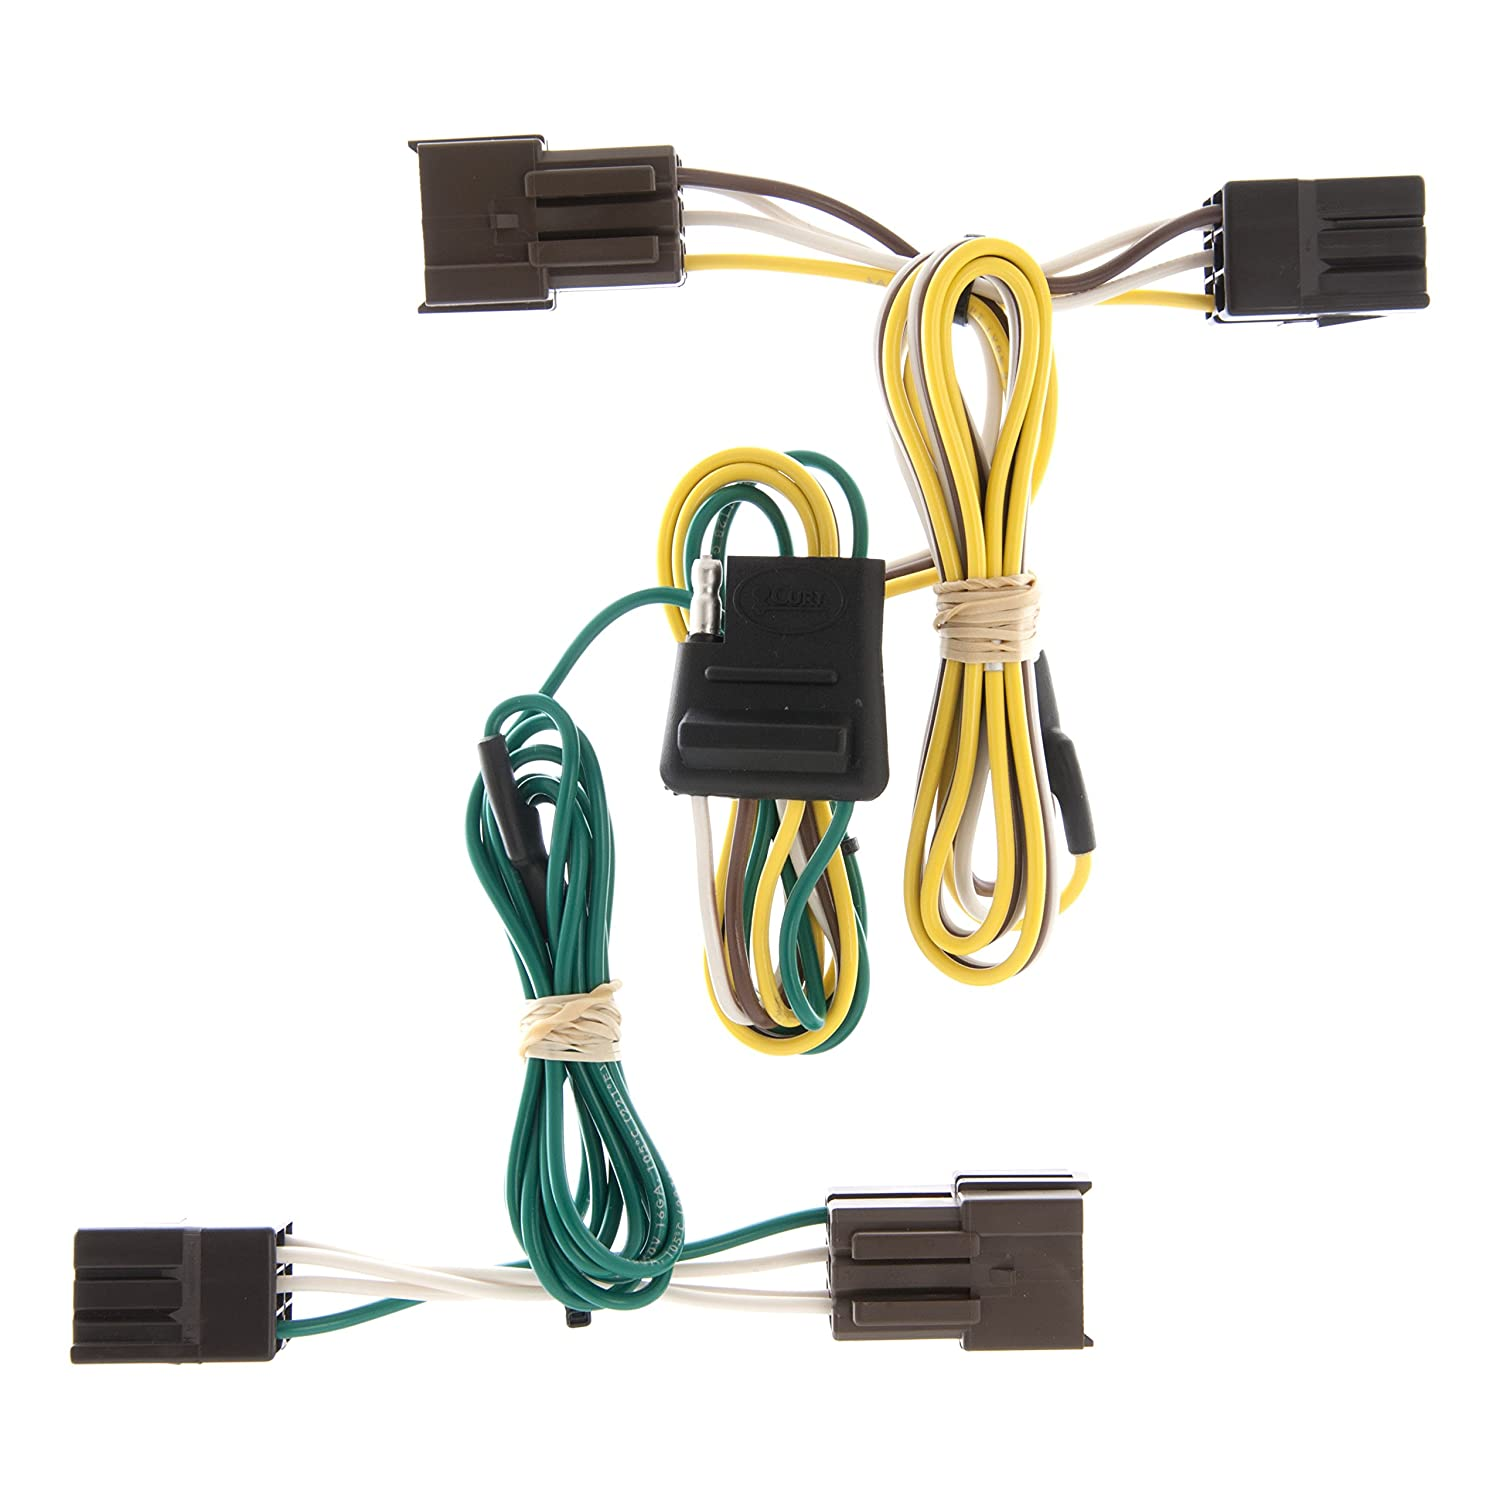 curt 55375 vehicle side custom 4 pin trailer wiring harness for select ford taurus, mercury sable Mercury Tachometer Wiring Harness